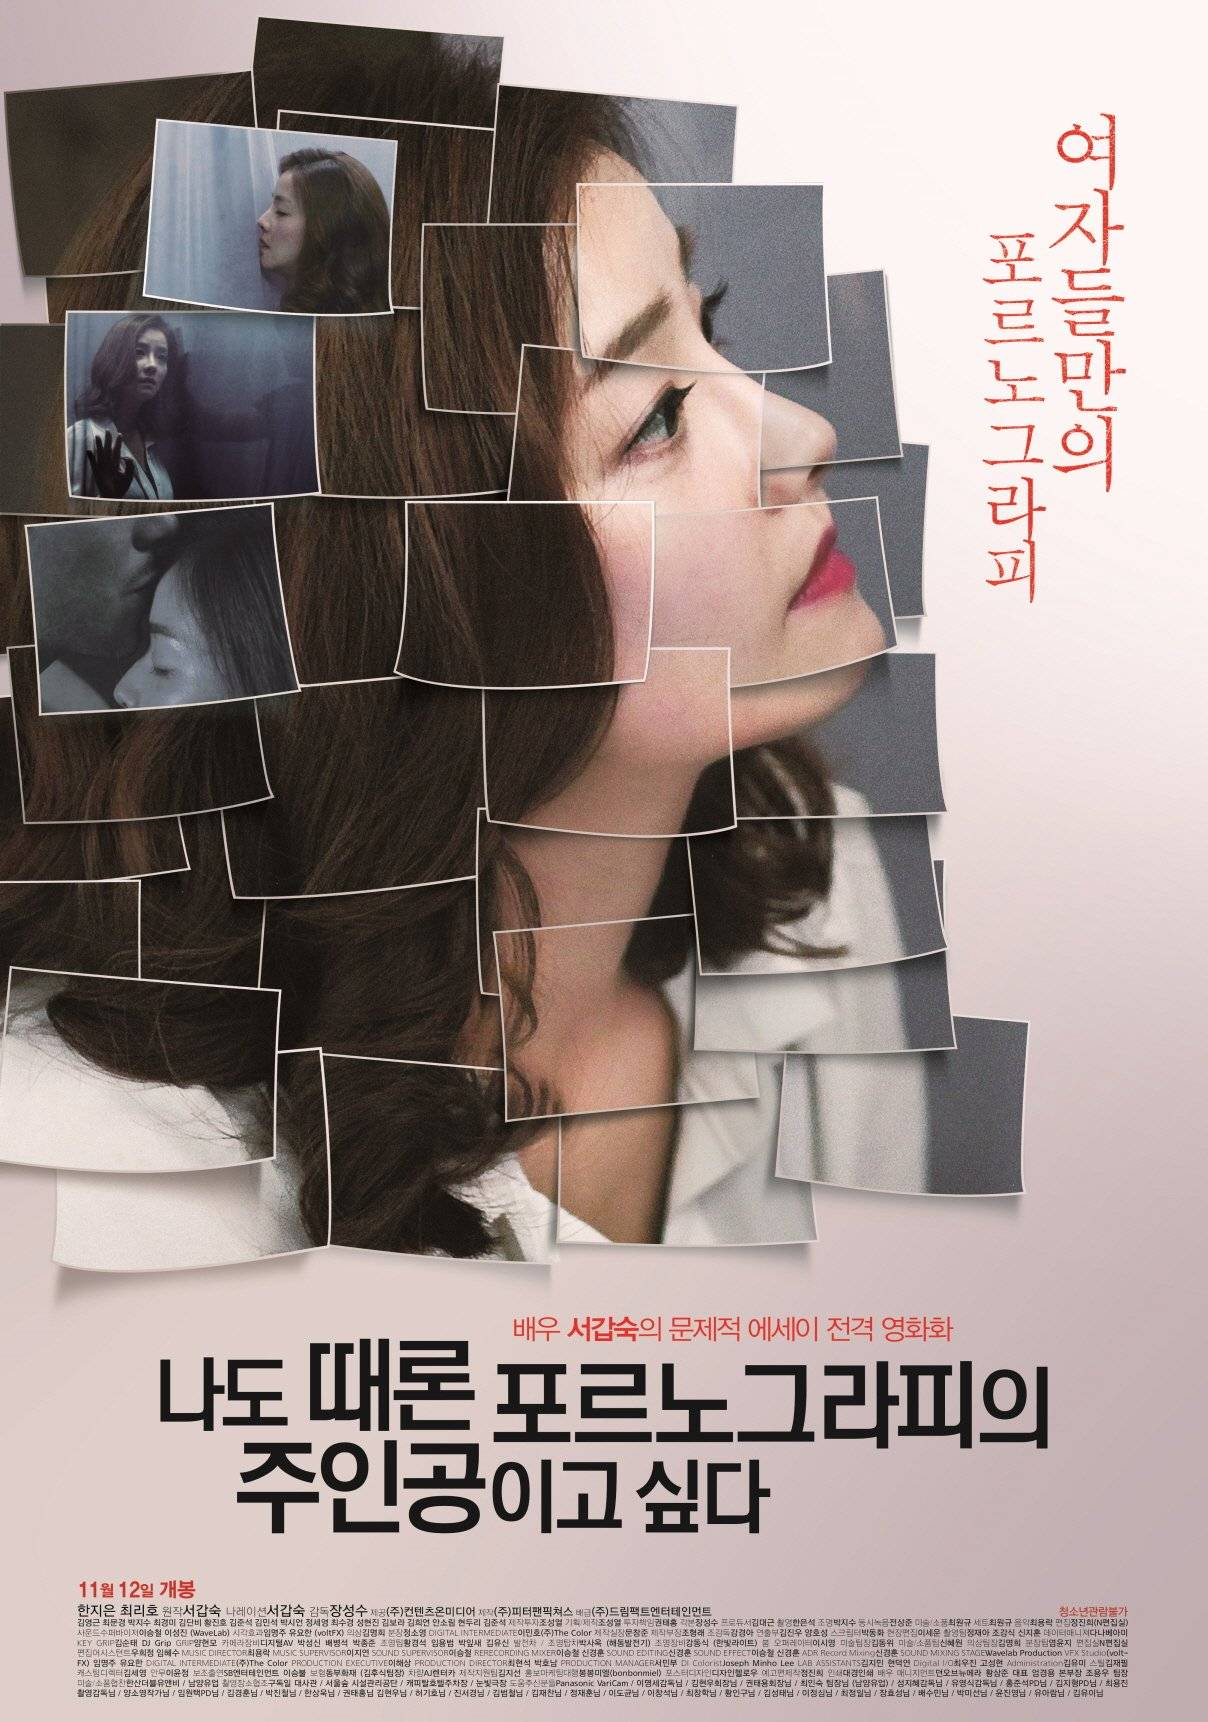 Korean drama porn — photo 13